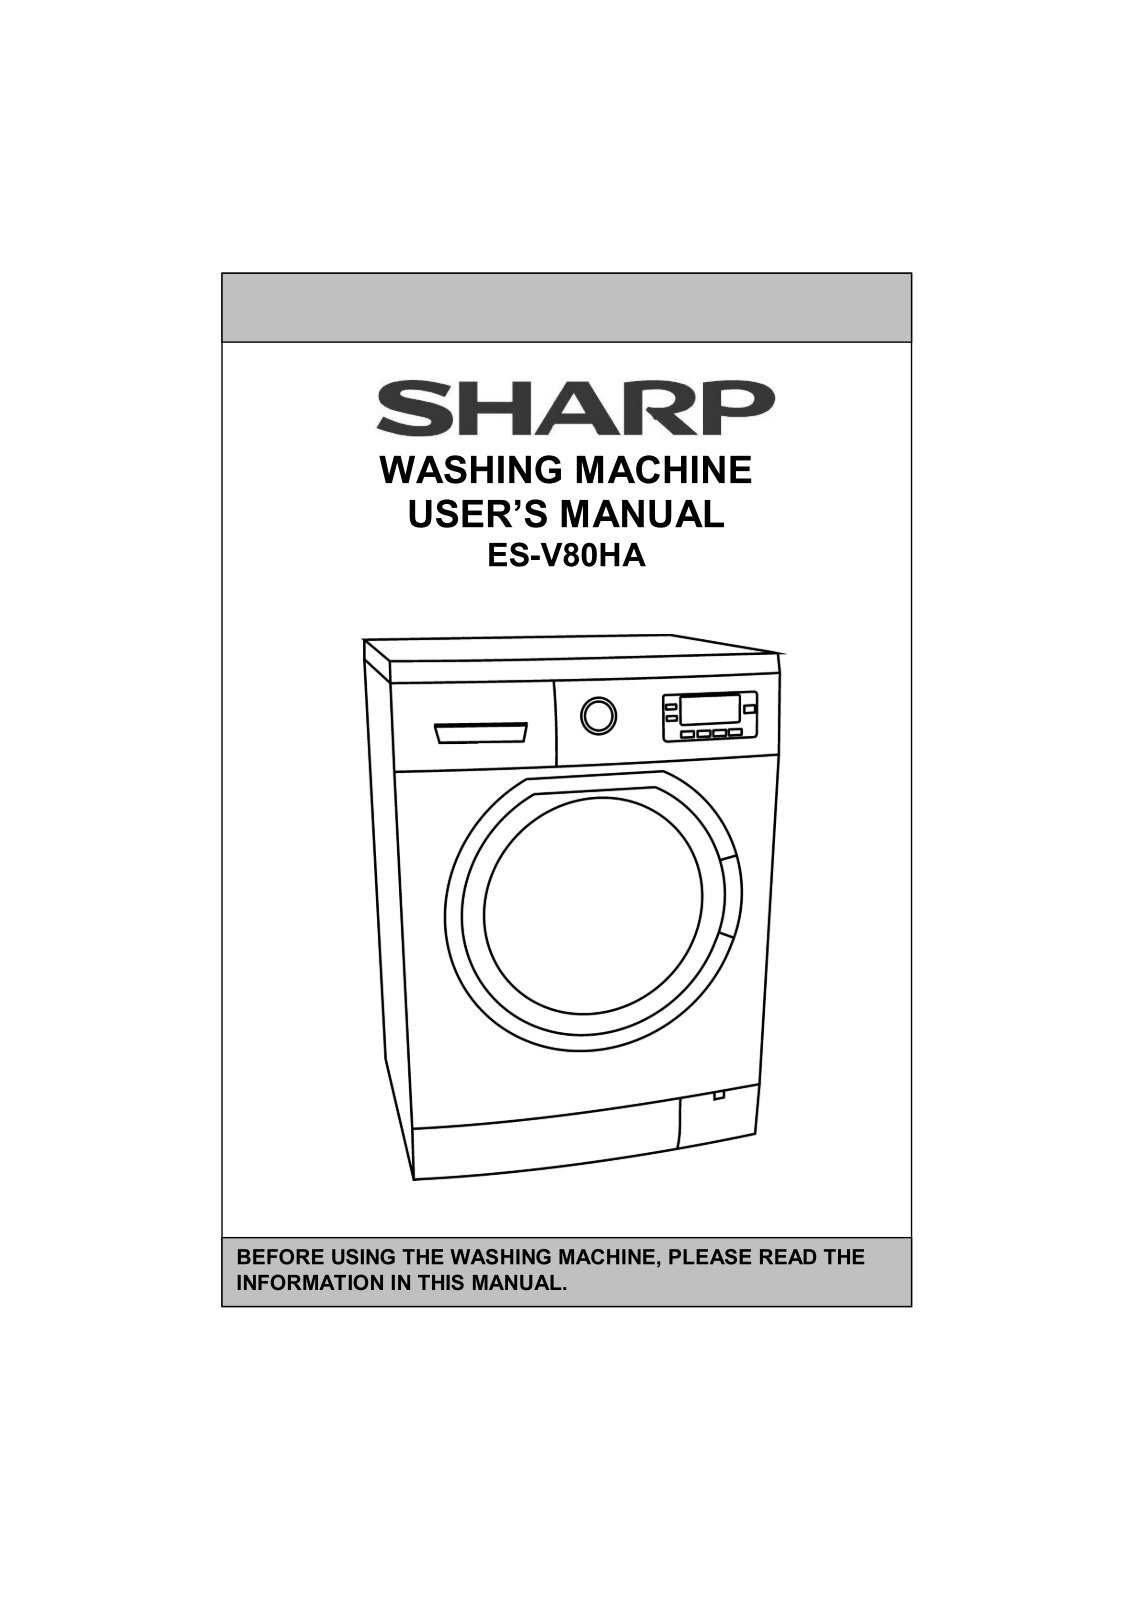 220 free Magazines from SUPPORT.SHARP.NET.AU